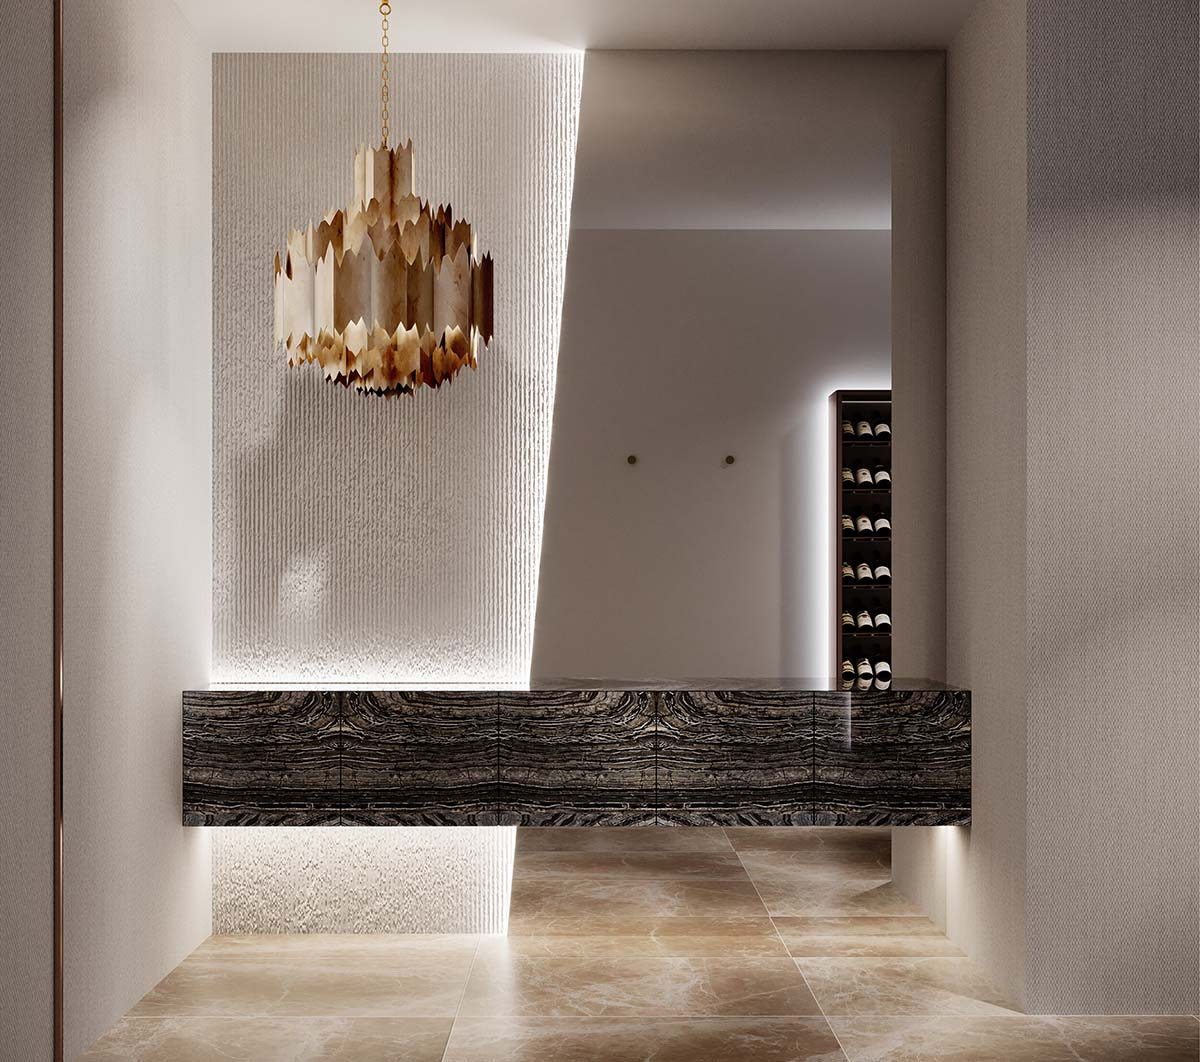 bespoke entrance of a residential apartment with a sculptural chandelier